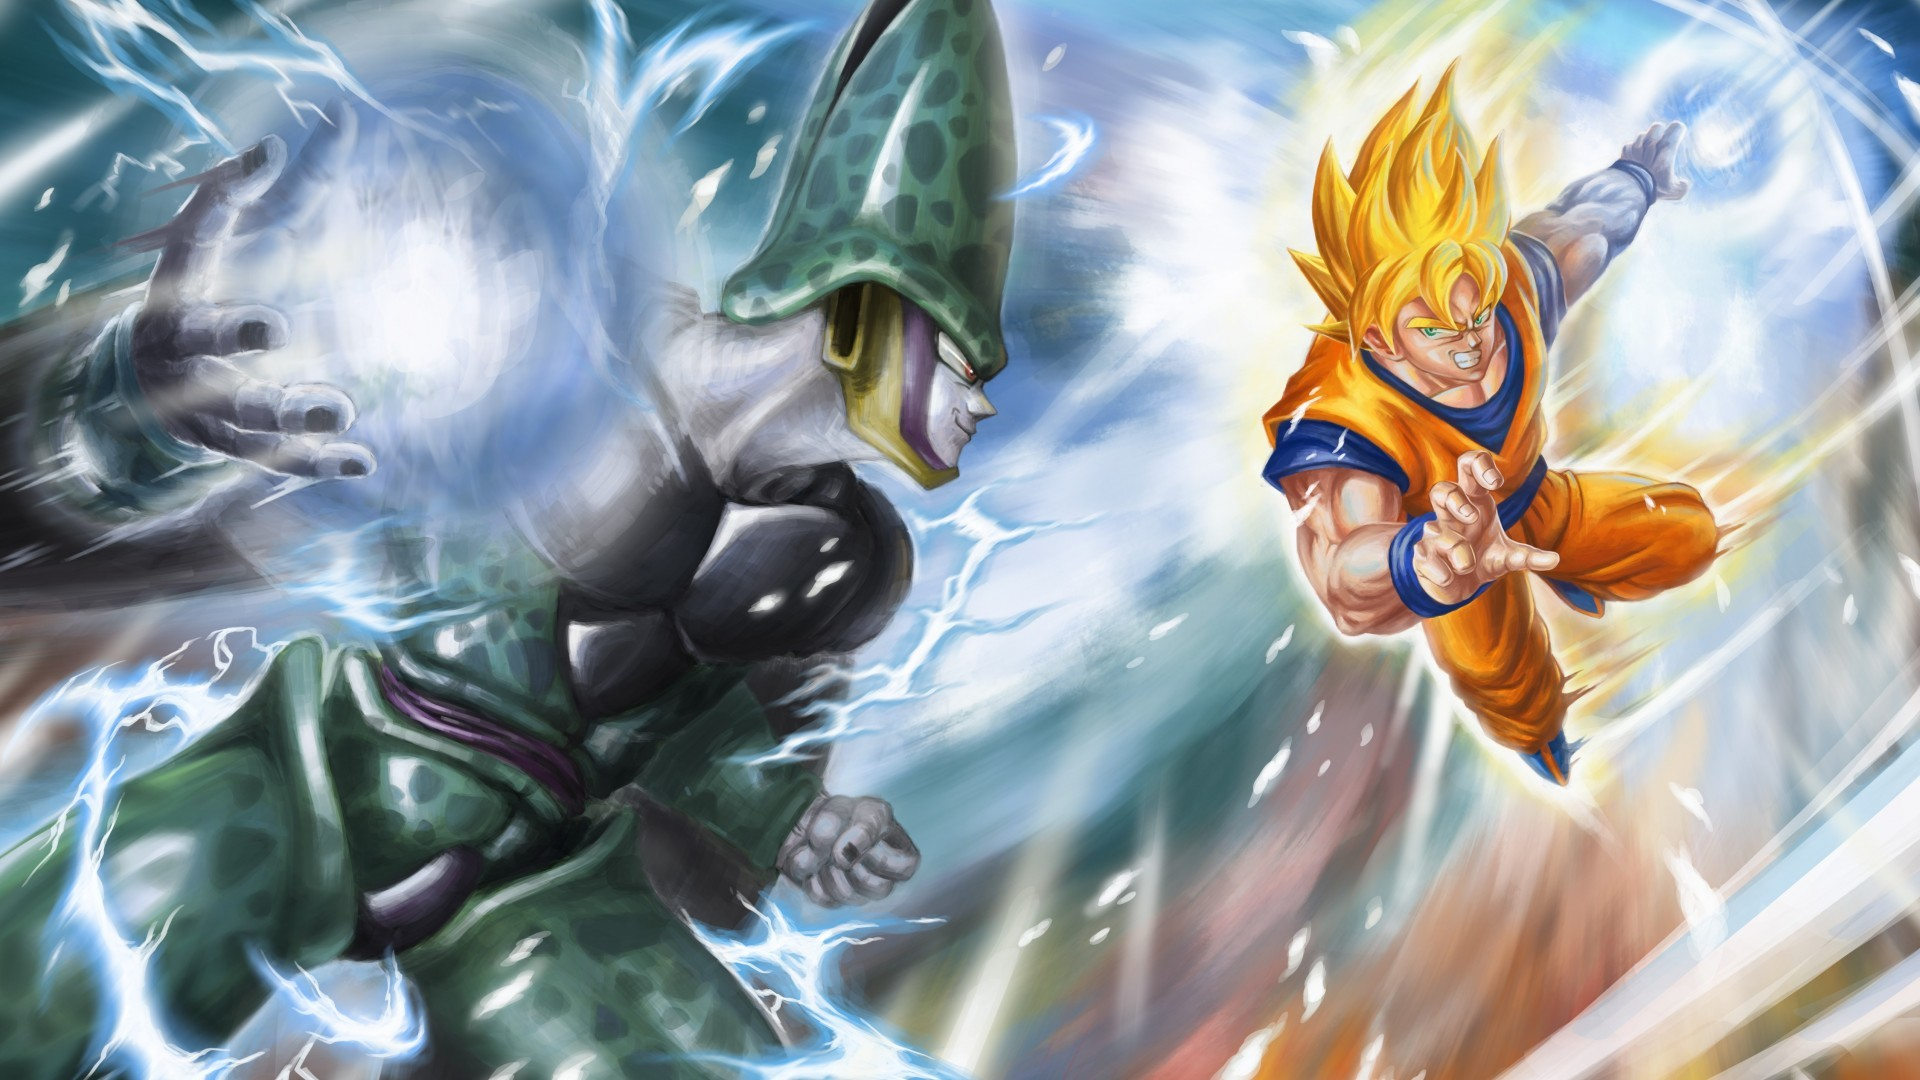 SSJ Goku vs Perfect Cell – Another well choreographed fight in Dbz. and the  shock of Goku forfeiting the match to Cell and passing the torch to Gohan.